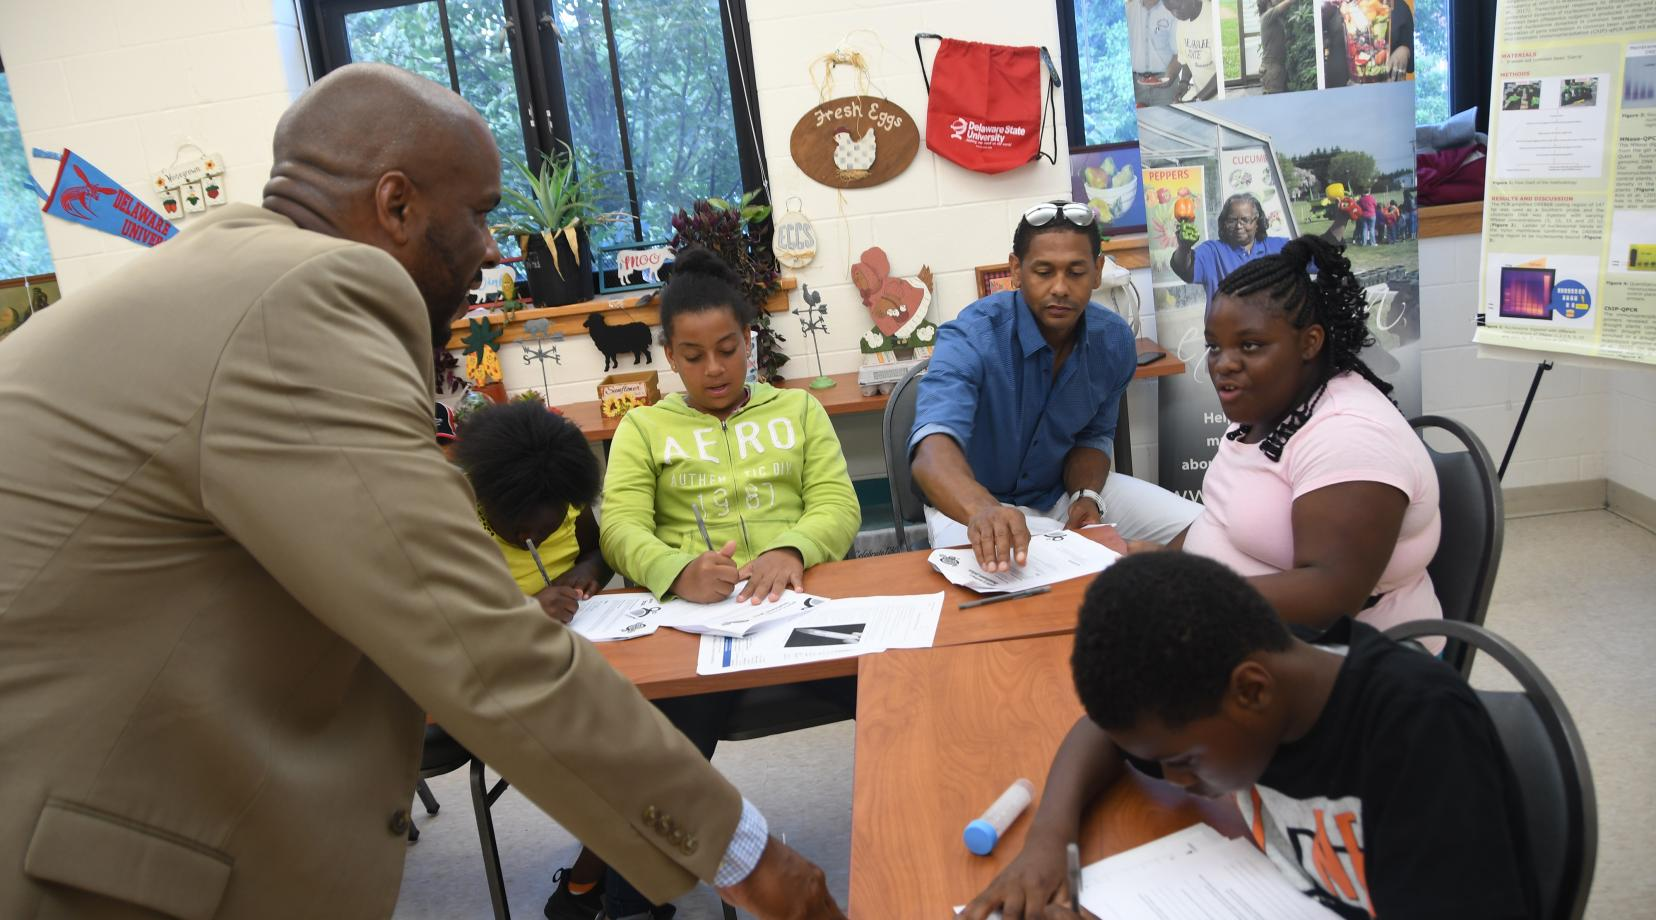 <p>Dr. Michael Casson, DSU associate professor of accounting, teaches Kingswood Community Center youth about the finer points of entrepreneurshp.</p>